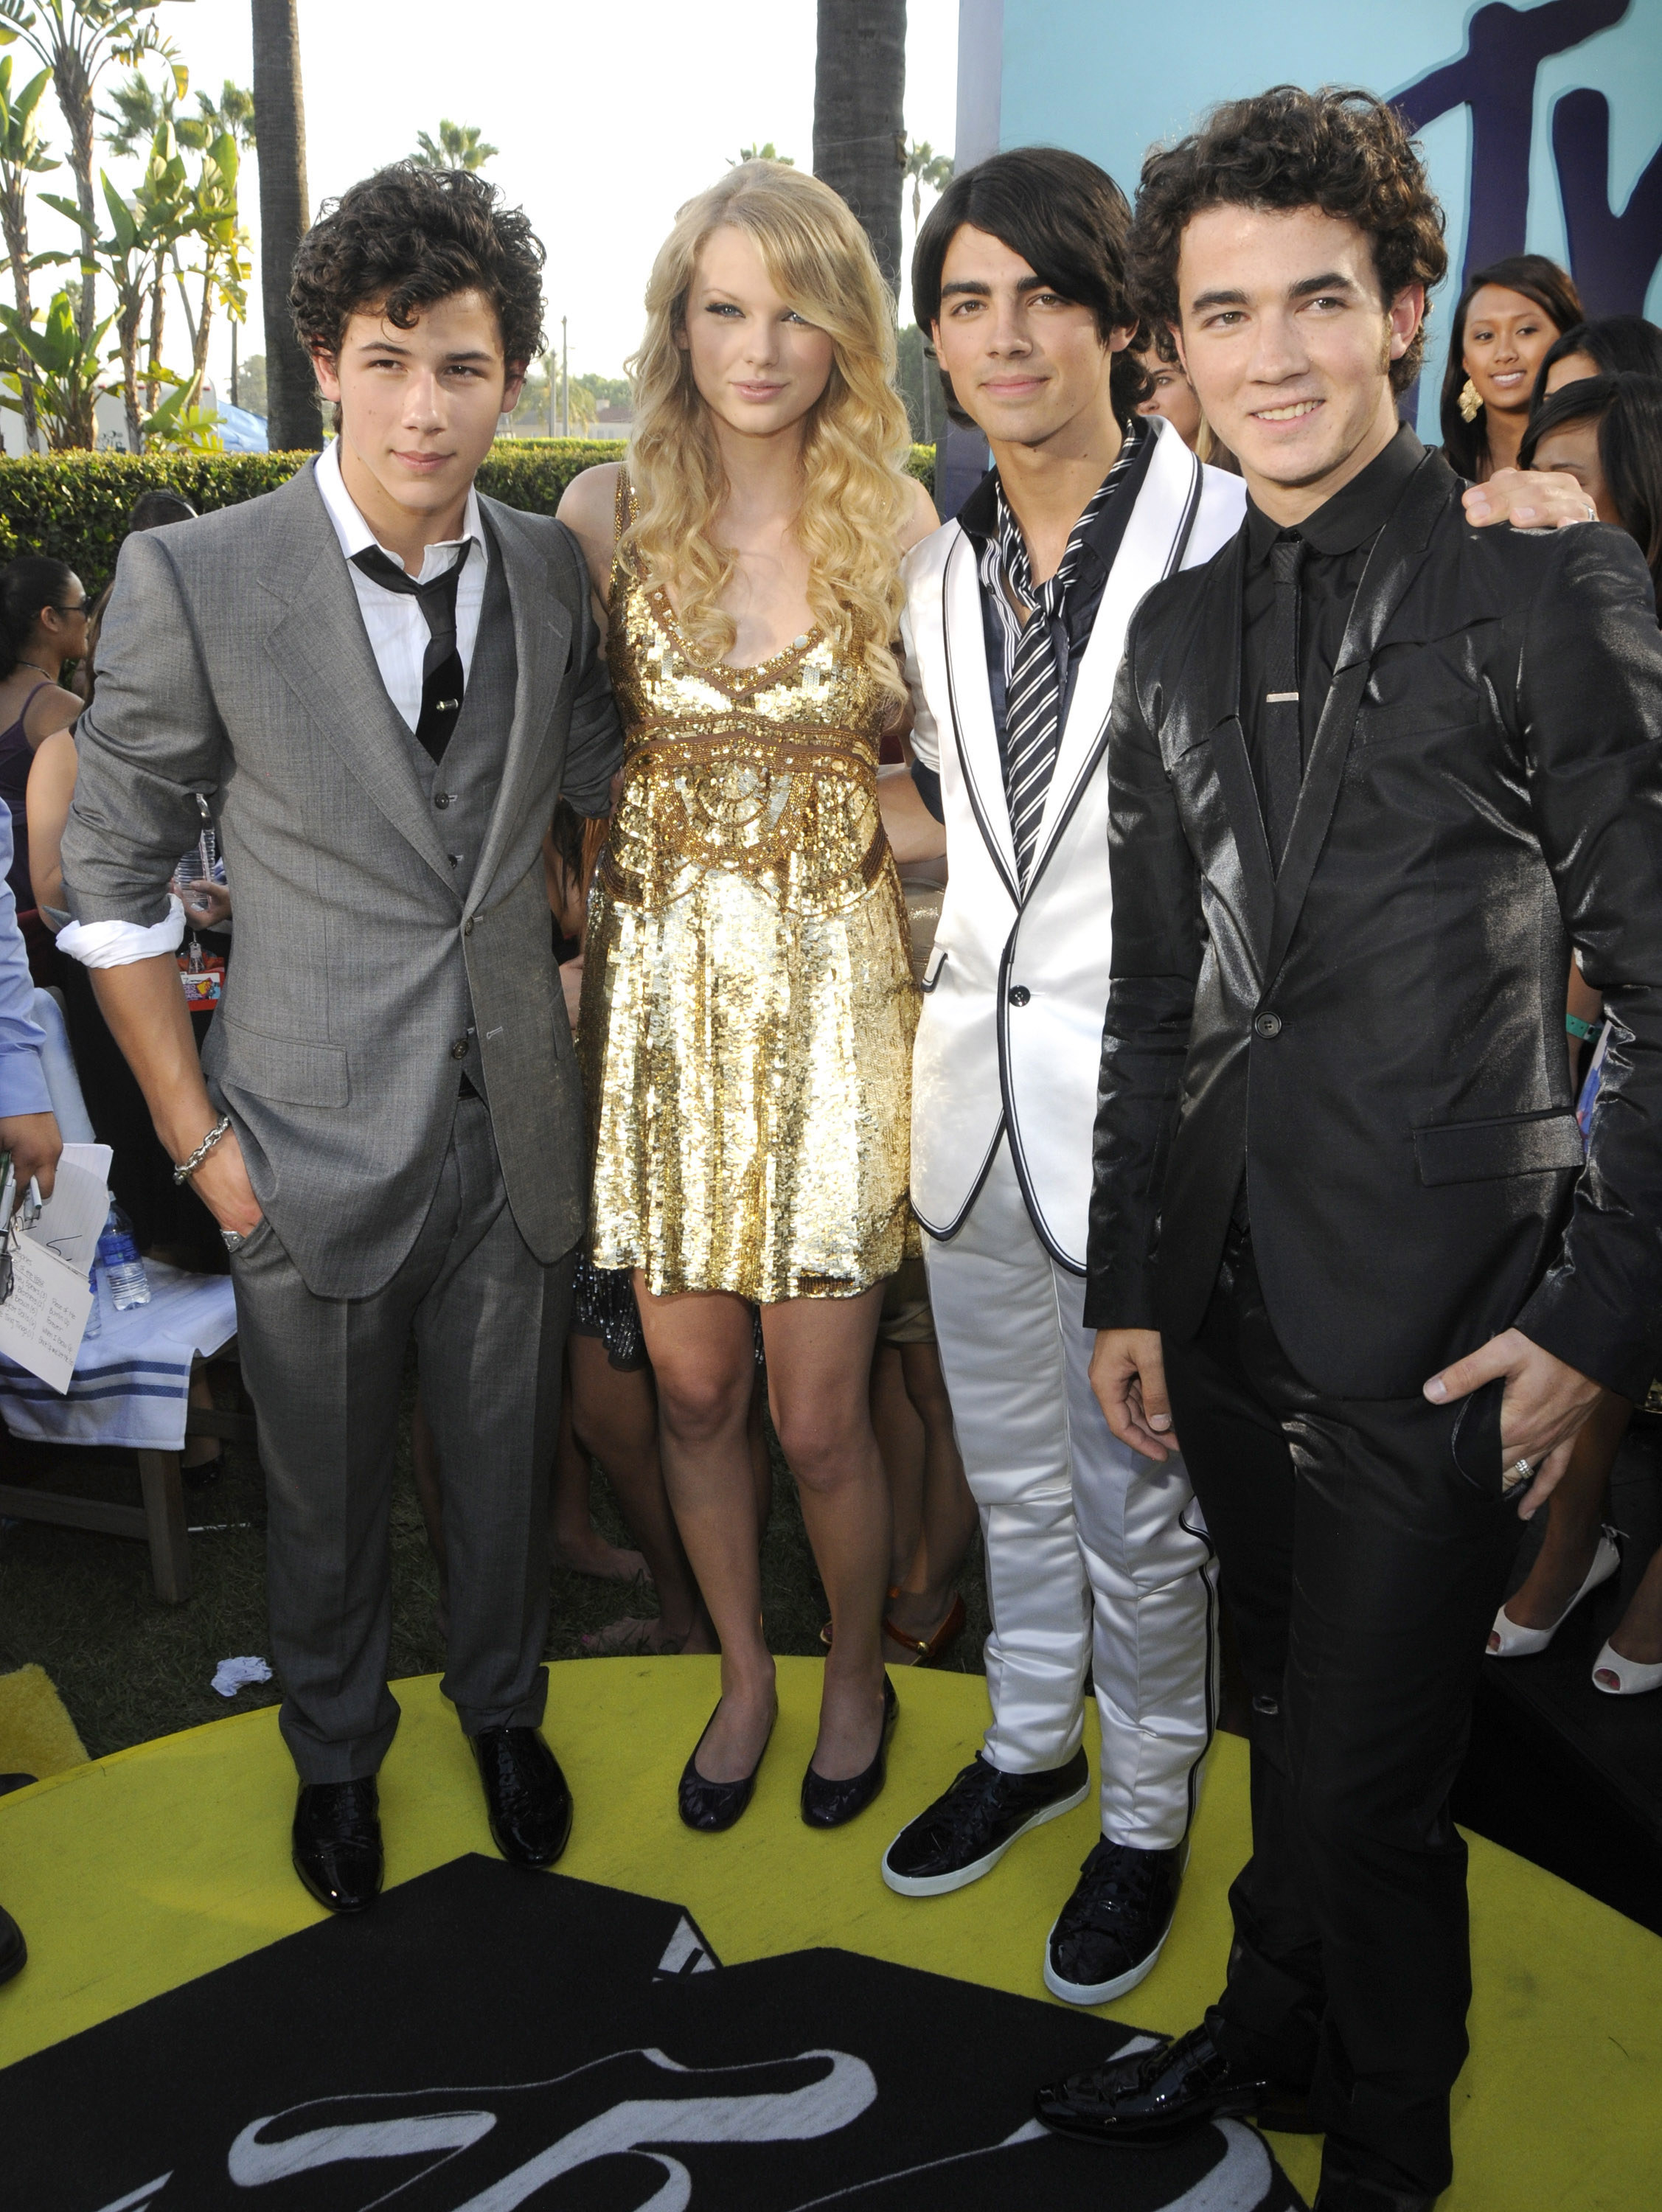 Taylor and the Jonas Brothers